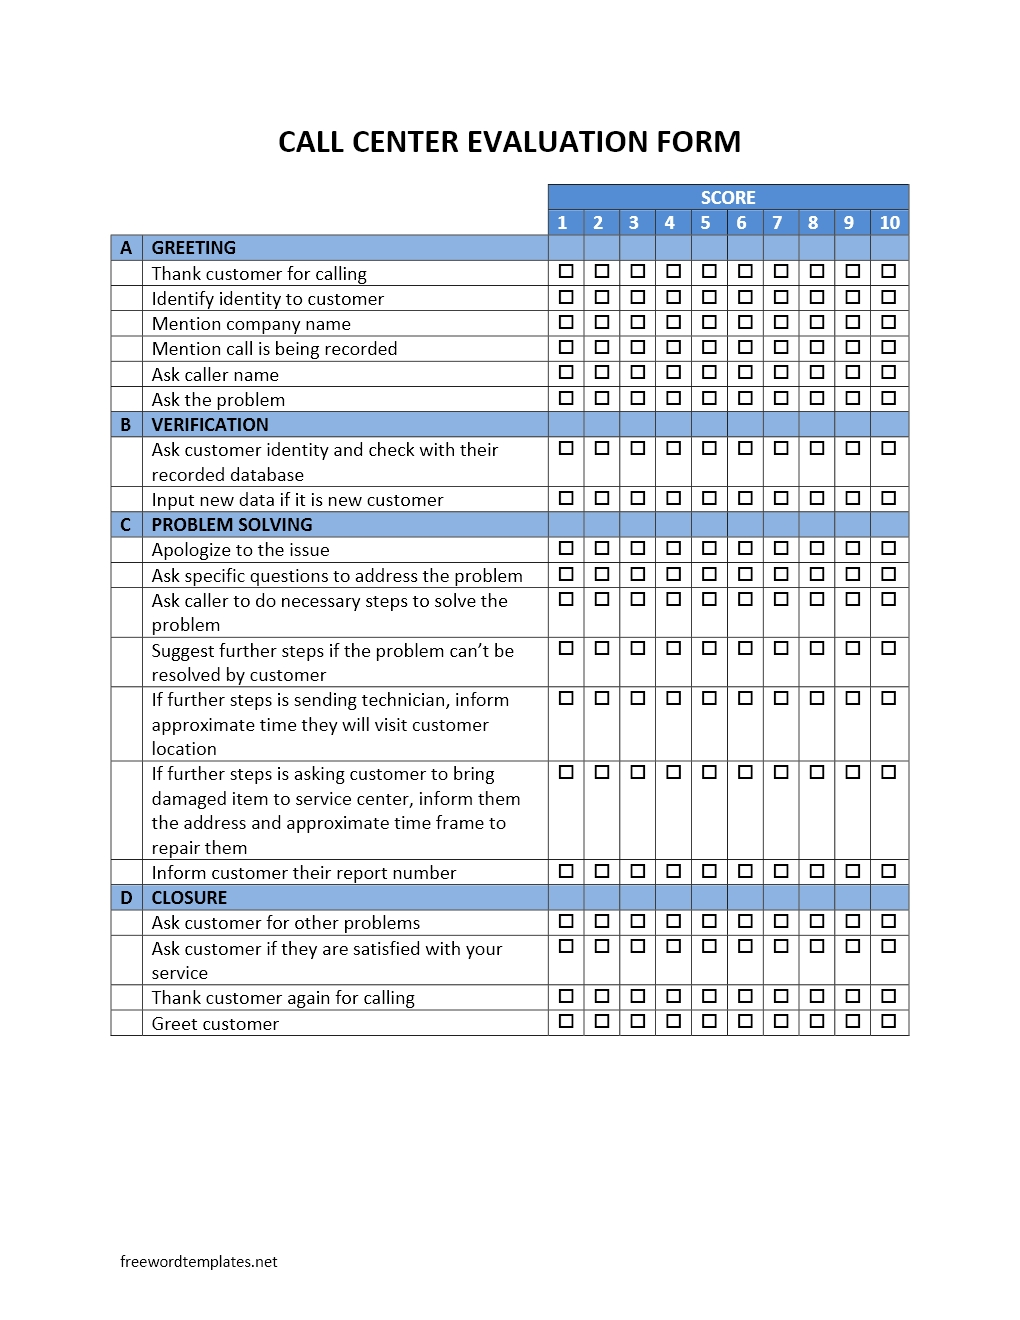 Call Center Evaluation Form Template  Customer Complaints Form Template